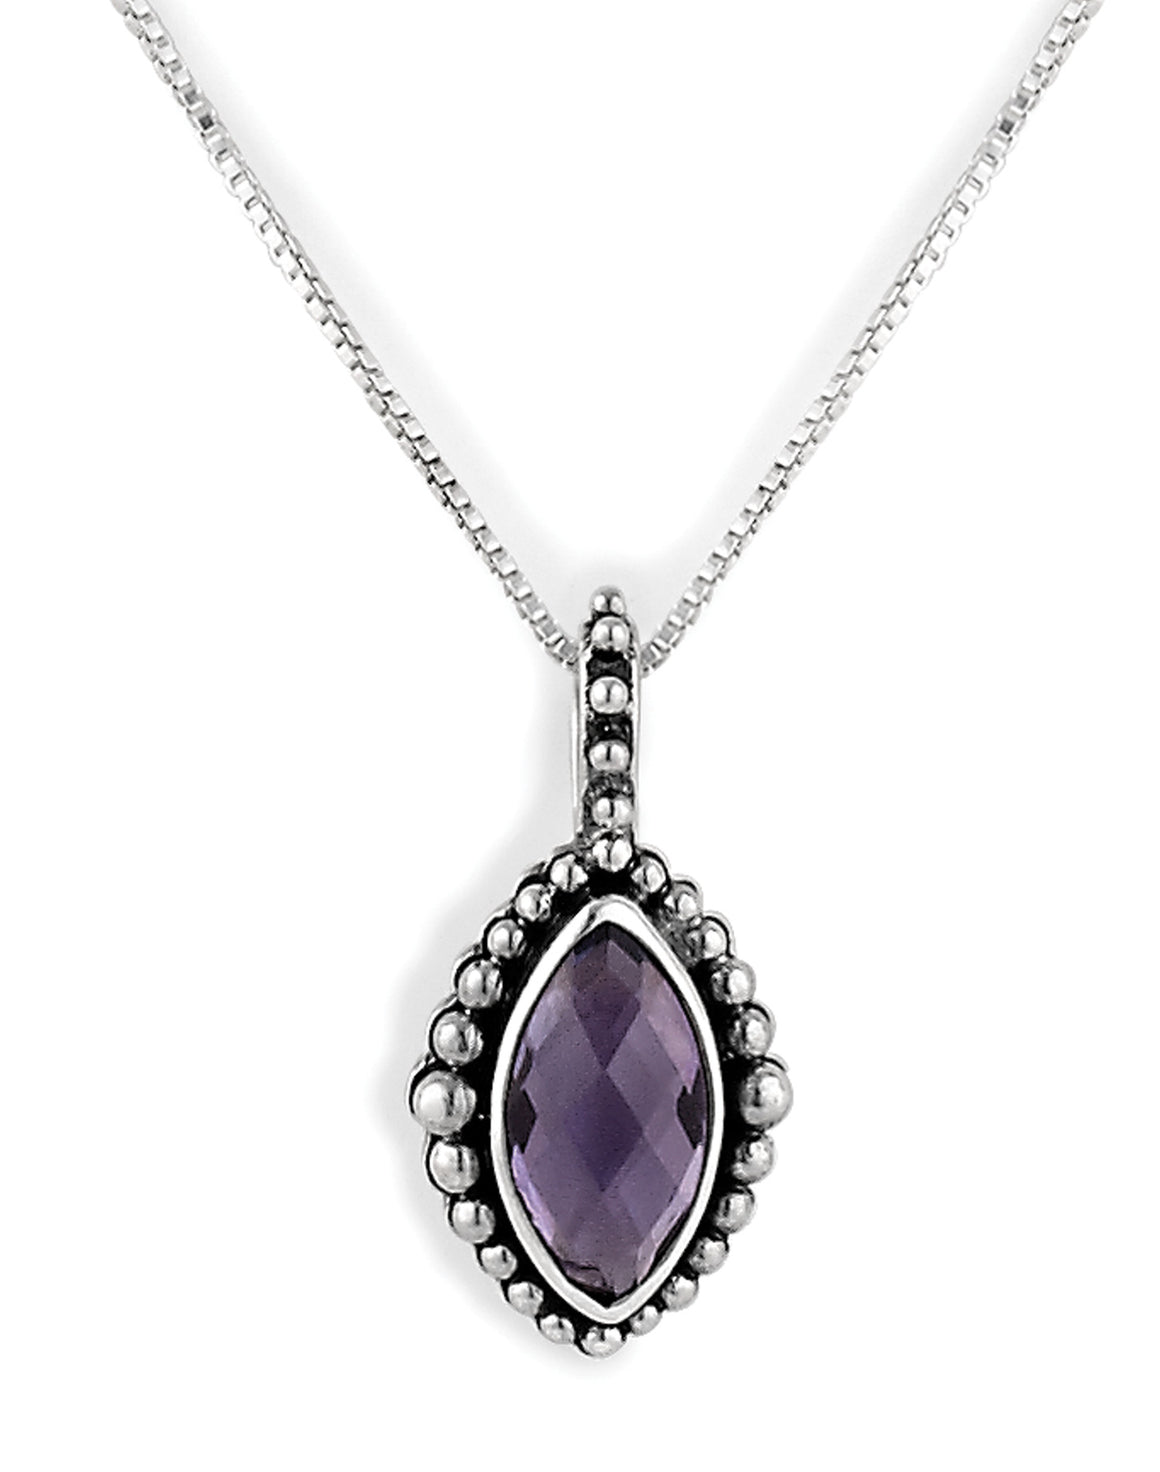 "February ""Secret Admirer"" Birthstone Necklace from Bonn Bons Birthstone Necklaces by Lori Bonn (512902HMA)"